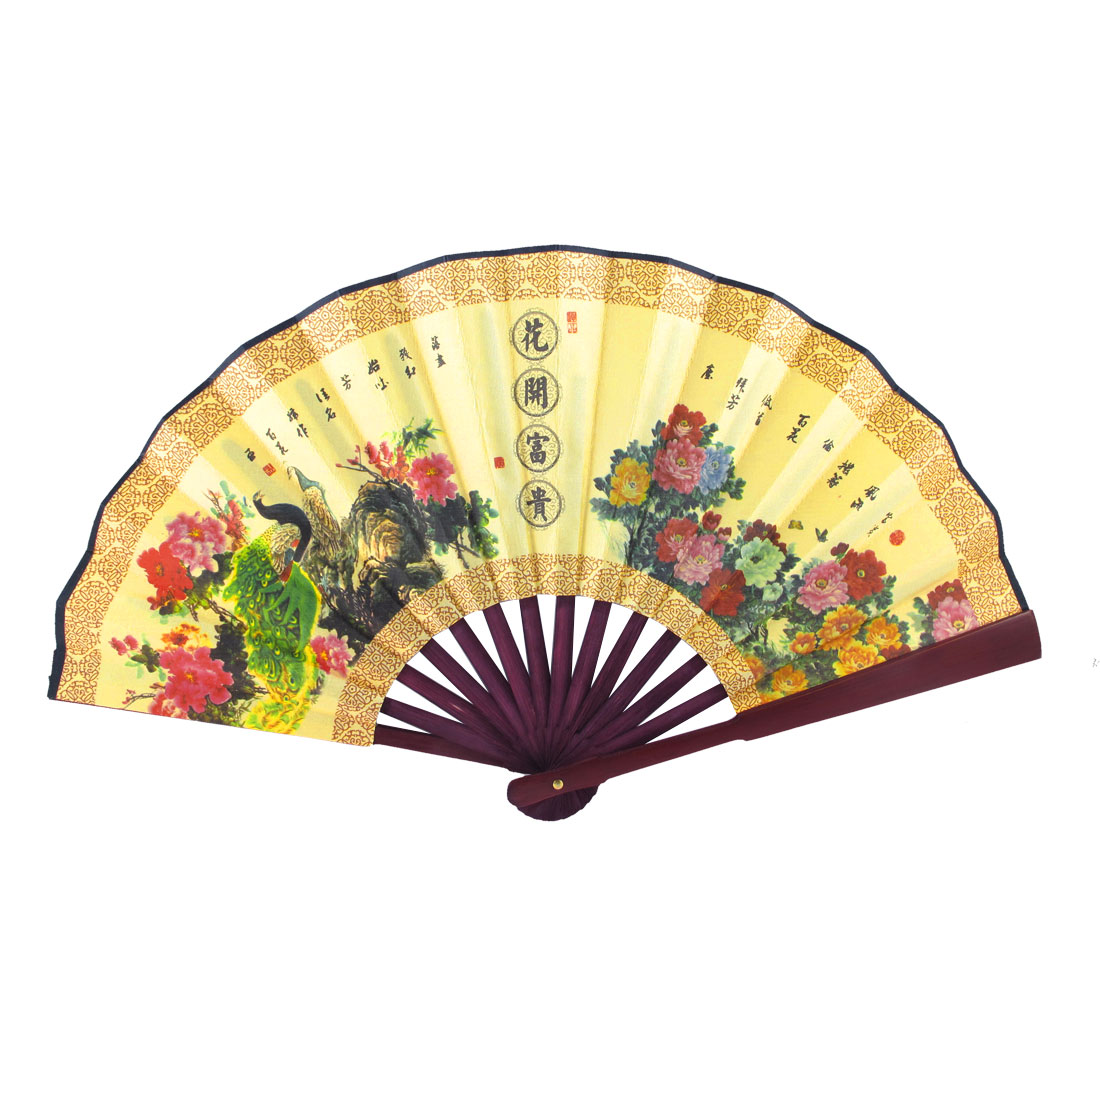 Bamboo Handle Peacock Flower Chinese Calligraphy Print Folding Hand Fan